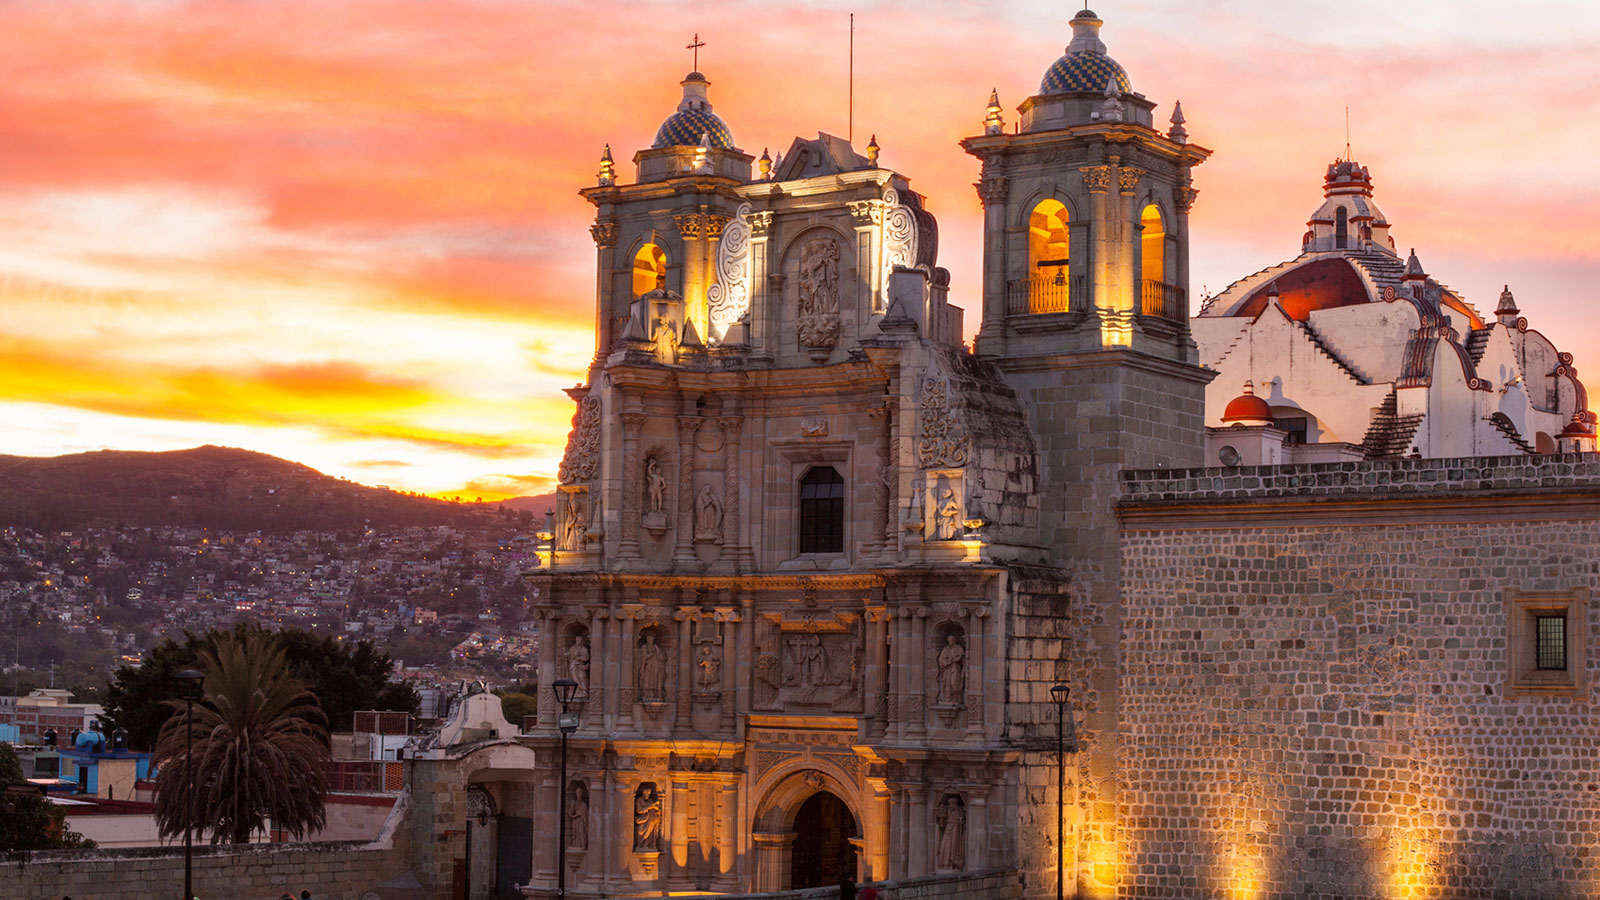 Street Markets, Mesoamerican Temples, and All the Mezcal: The 4-day Weekend in Oaxaca